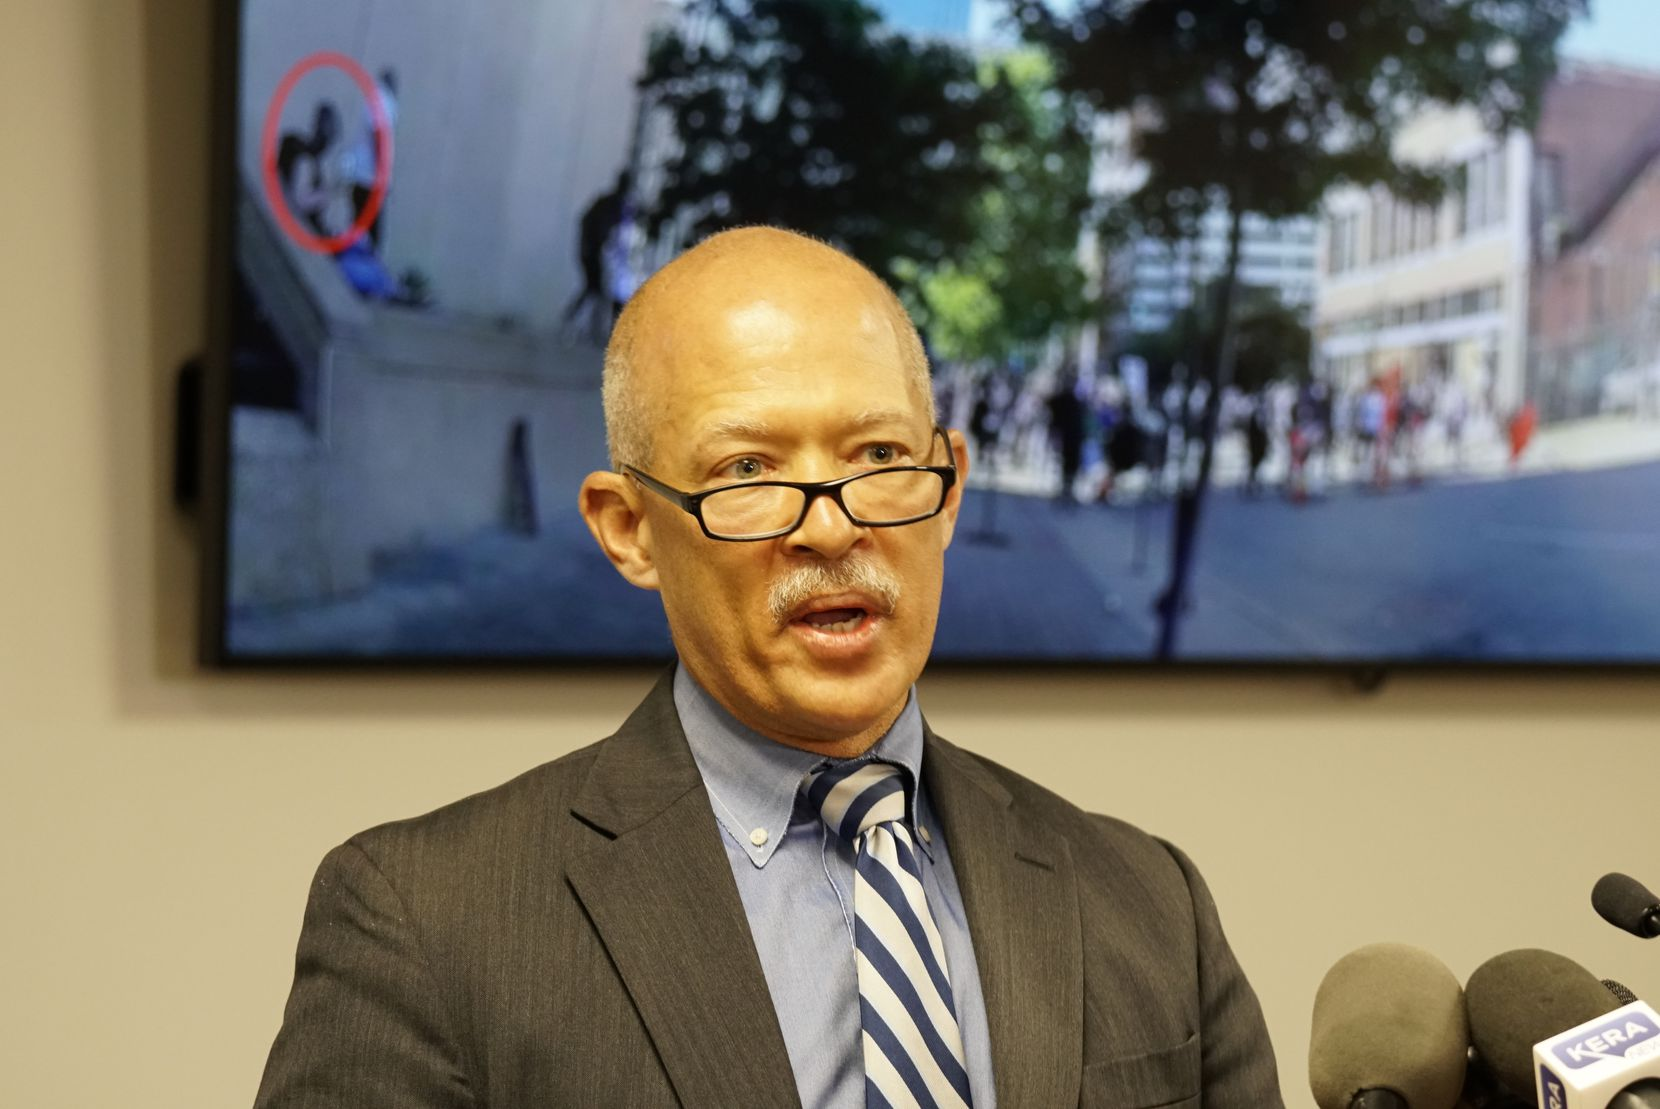 Dallas District Attorney John Creuzot seeks help tracking down images and videos that document injuries that took place during the downtown protests over the summer. He spoke at the Frank Crowley Court House in Dallas, Texas on Thursday Oct. 29, 2020.